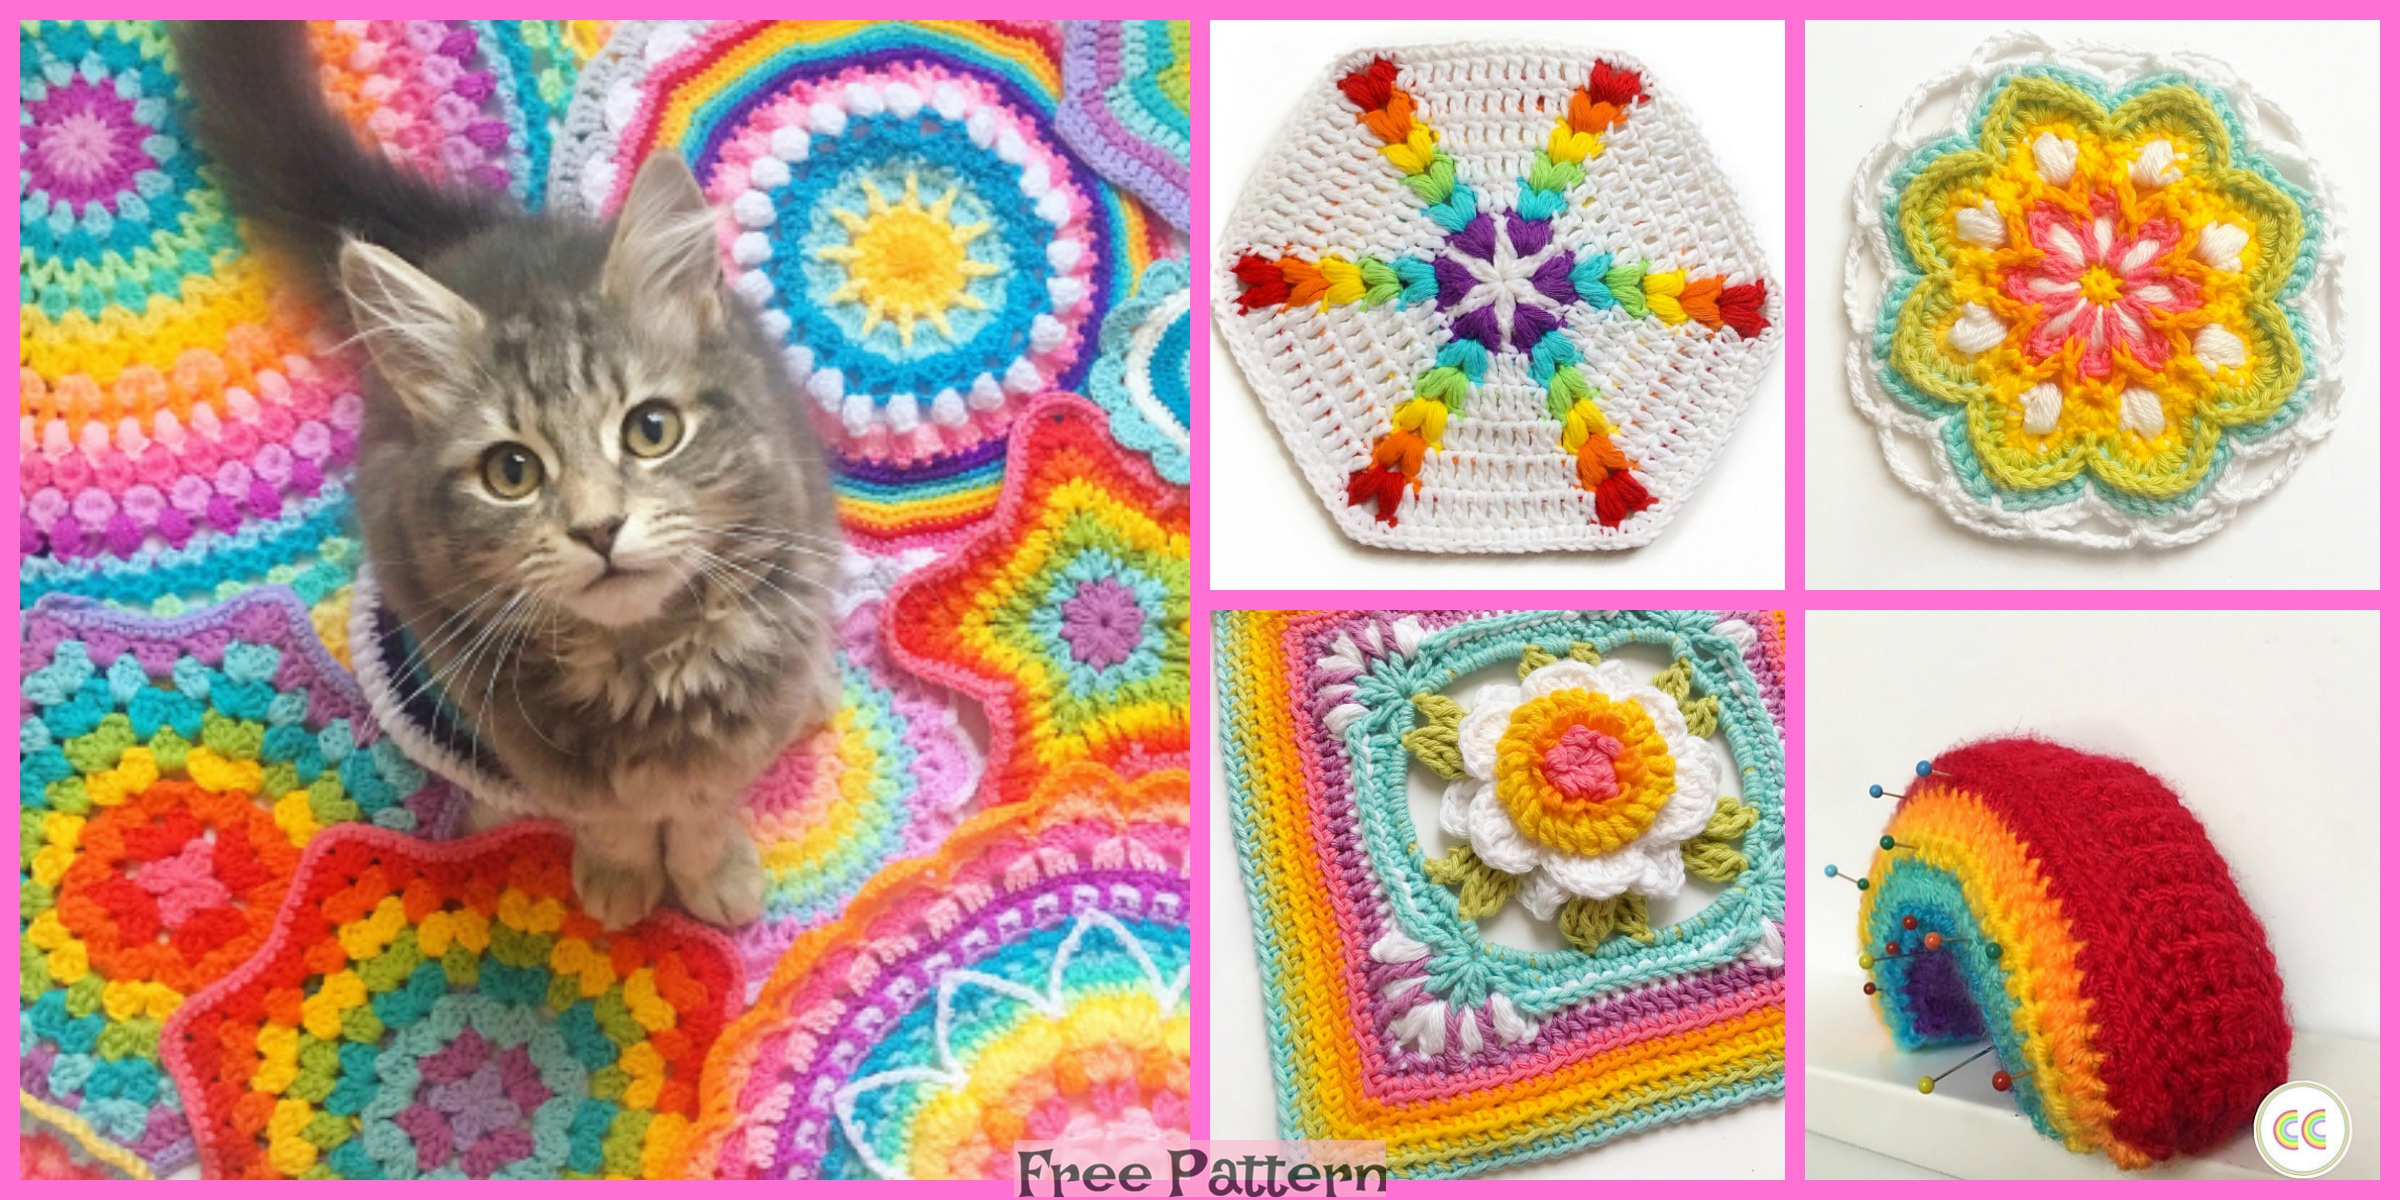 Crochet Rainbow Puff Hexagon – Free Pattern